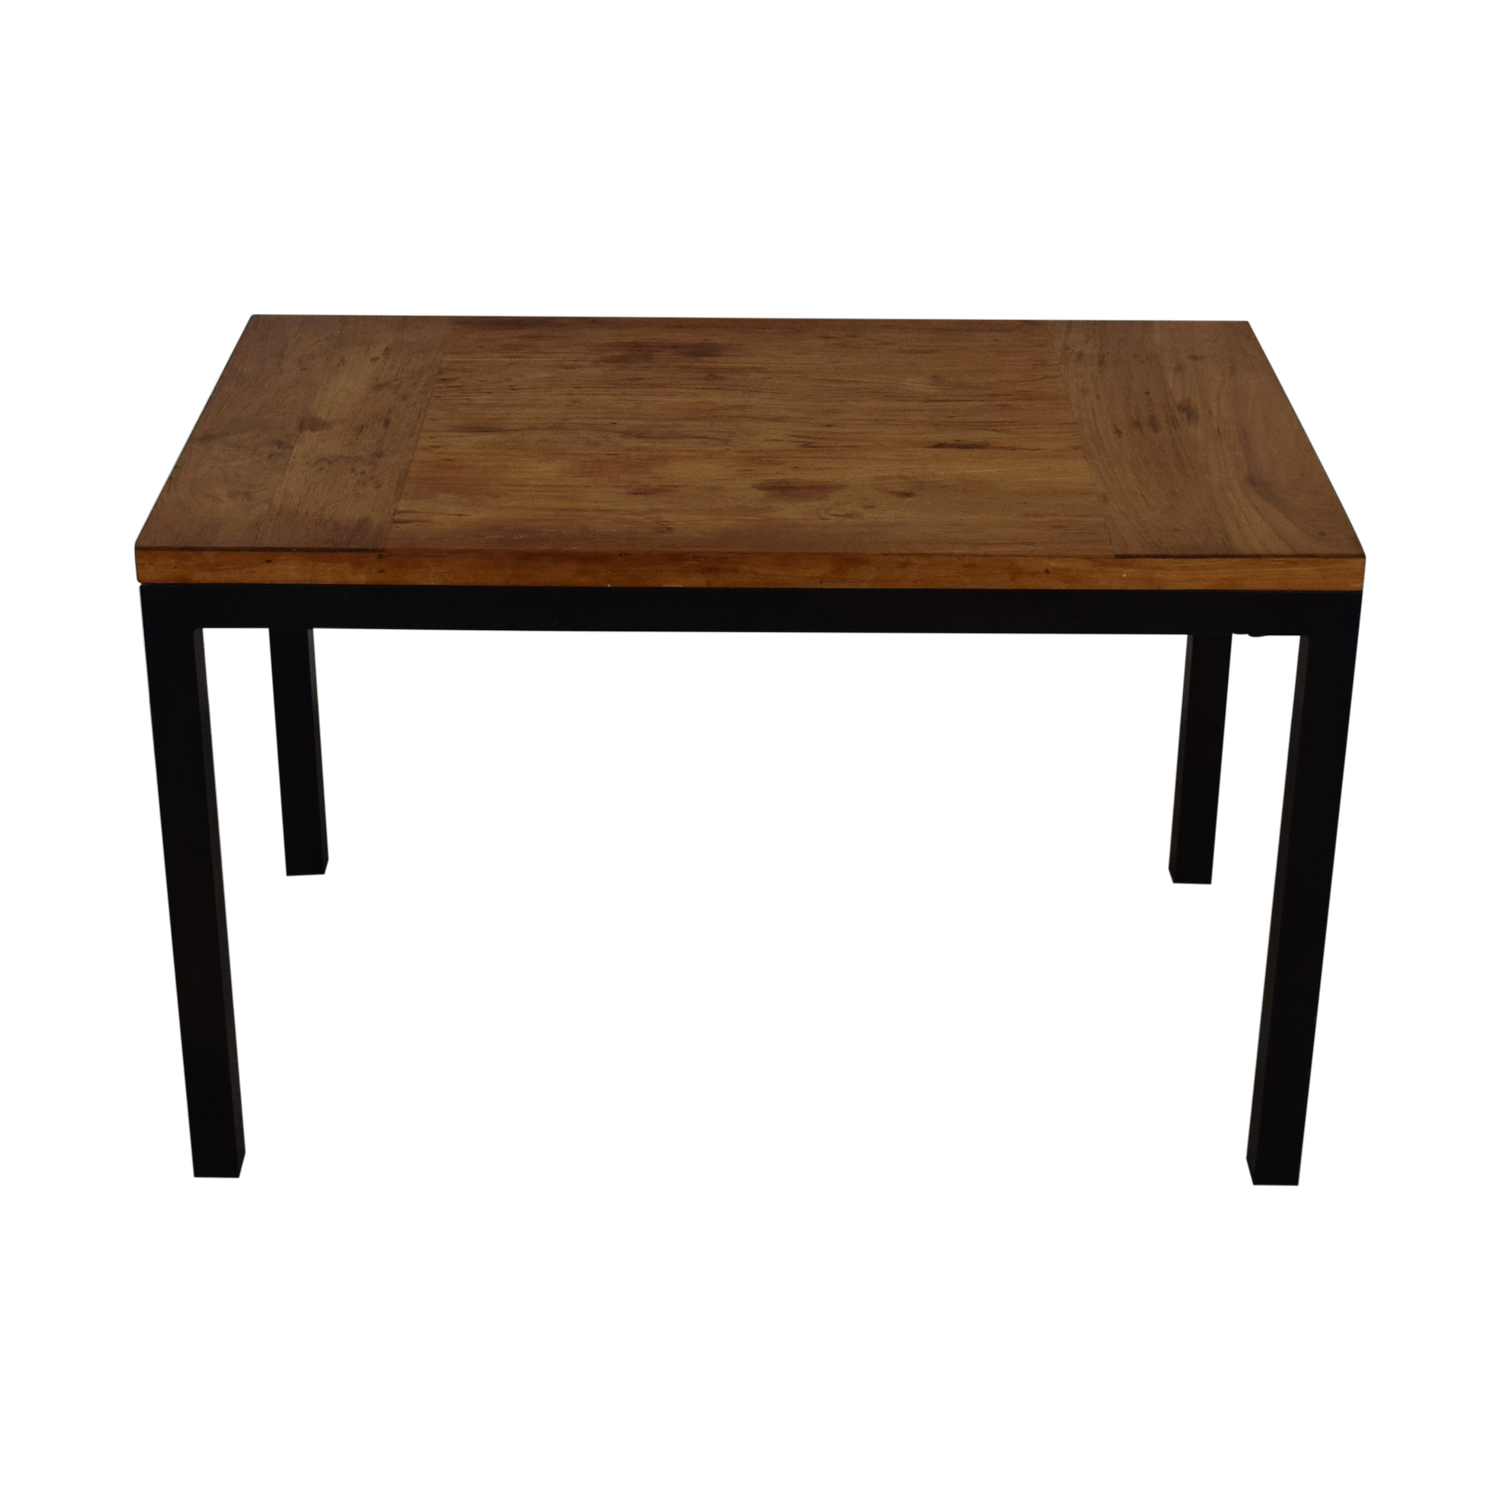 shop Crate & Barrel Parsons Kitchen Table With Metal Frame Crate & Barrel Dinner Tables